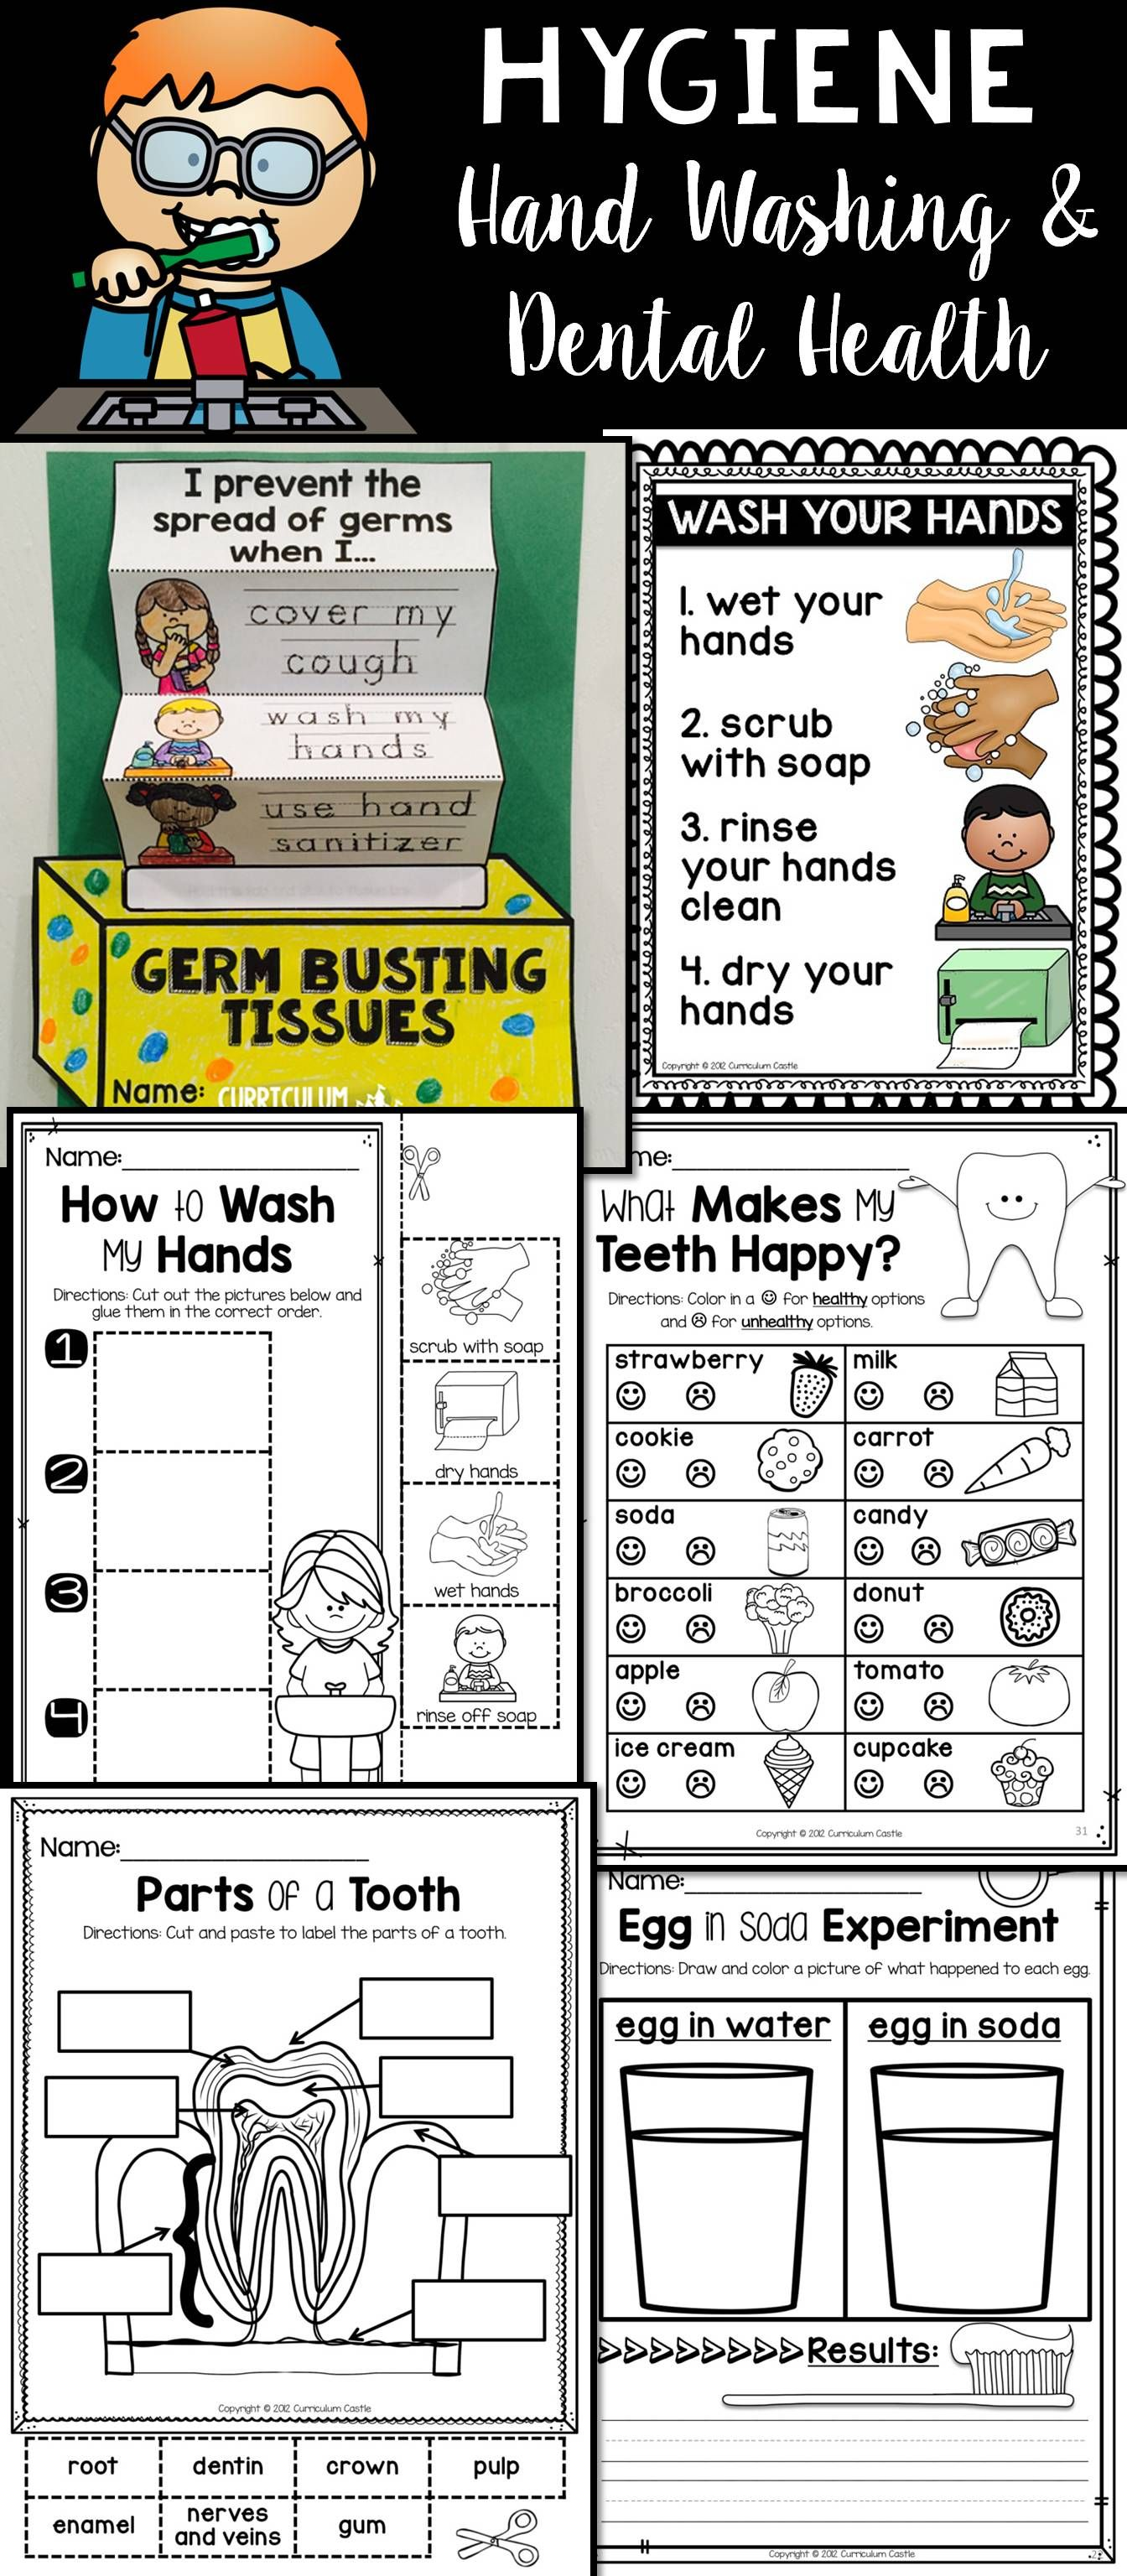 Hygiene And Healthy Habits Hand Washing Amp Brushing Teeth Dental Health